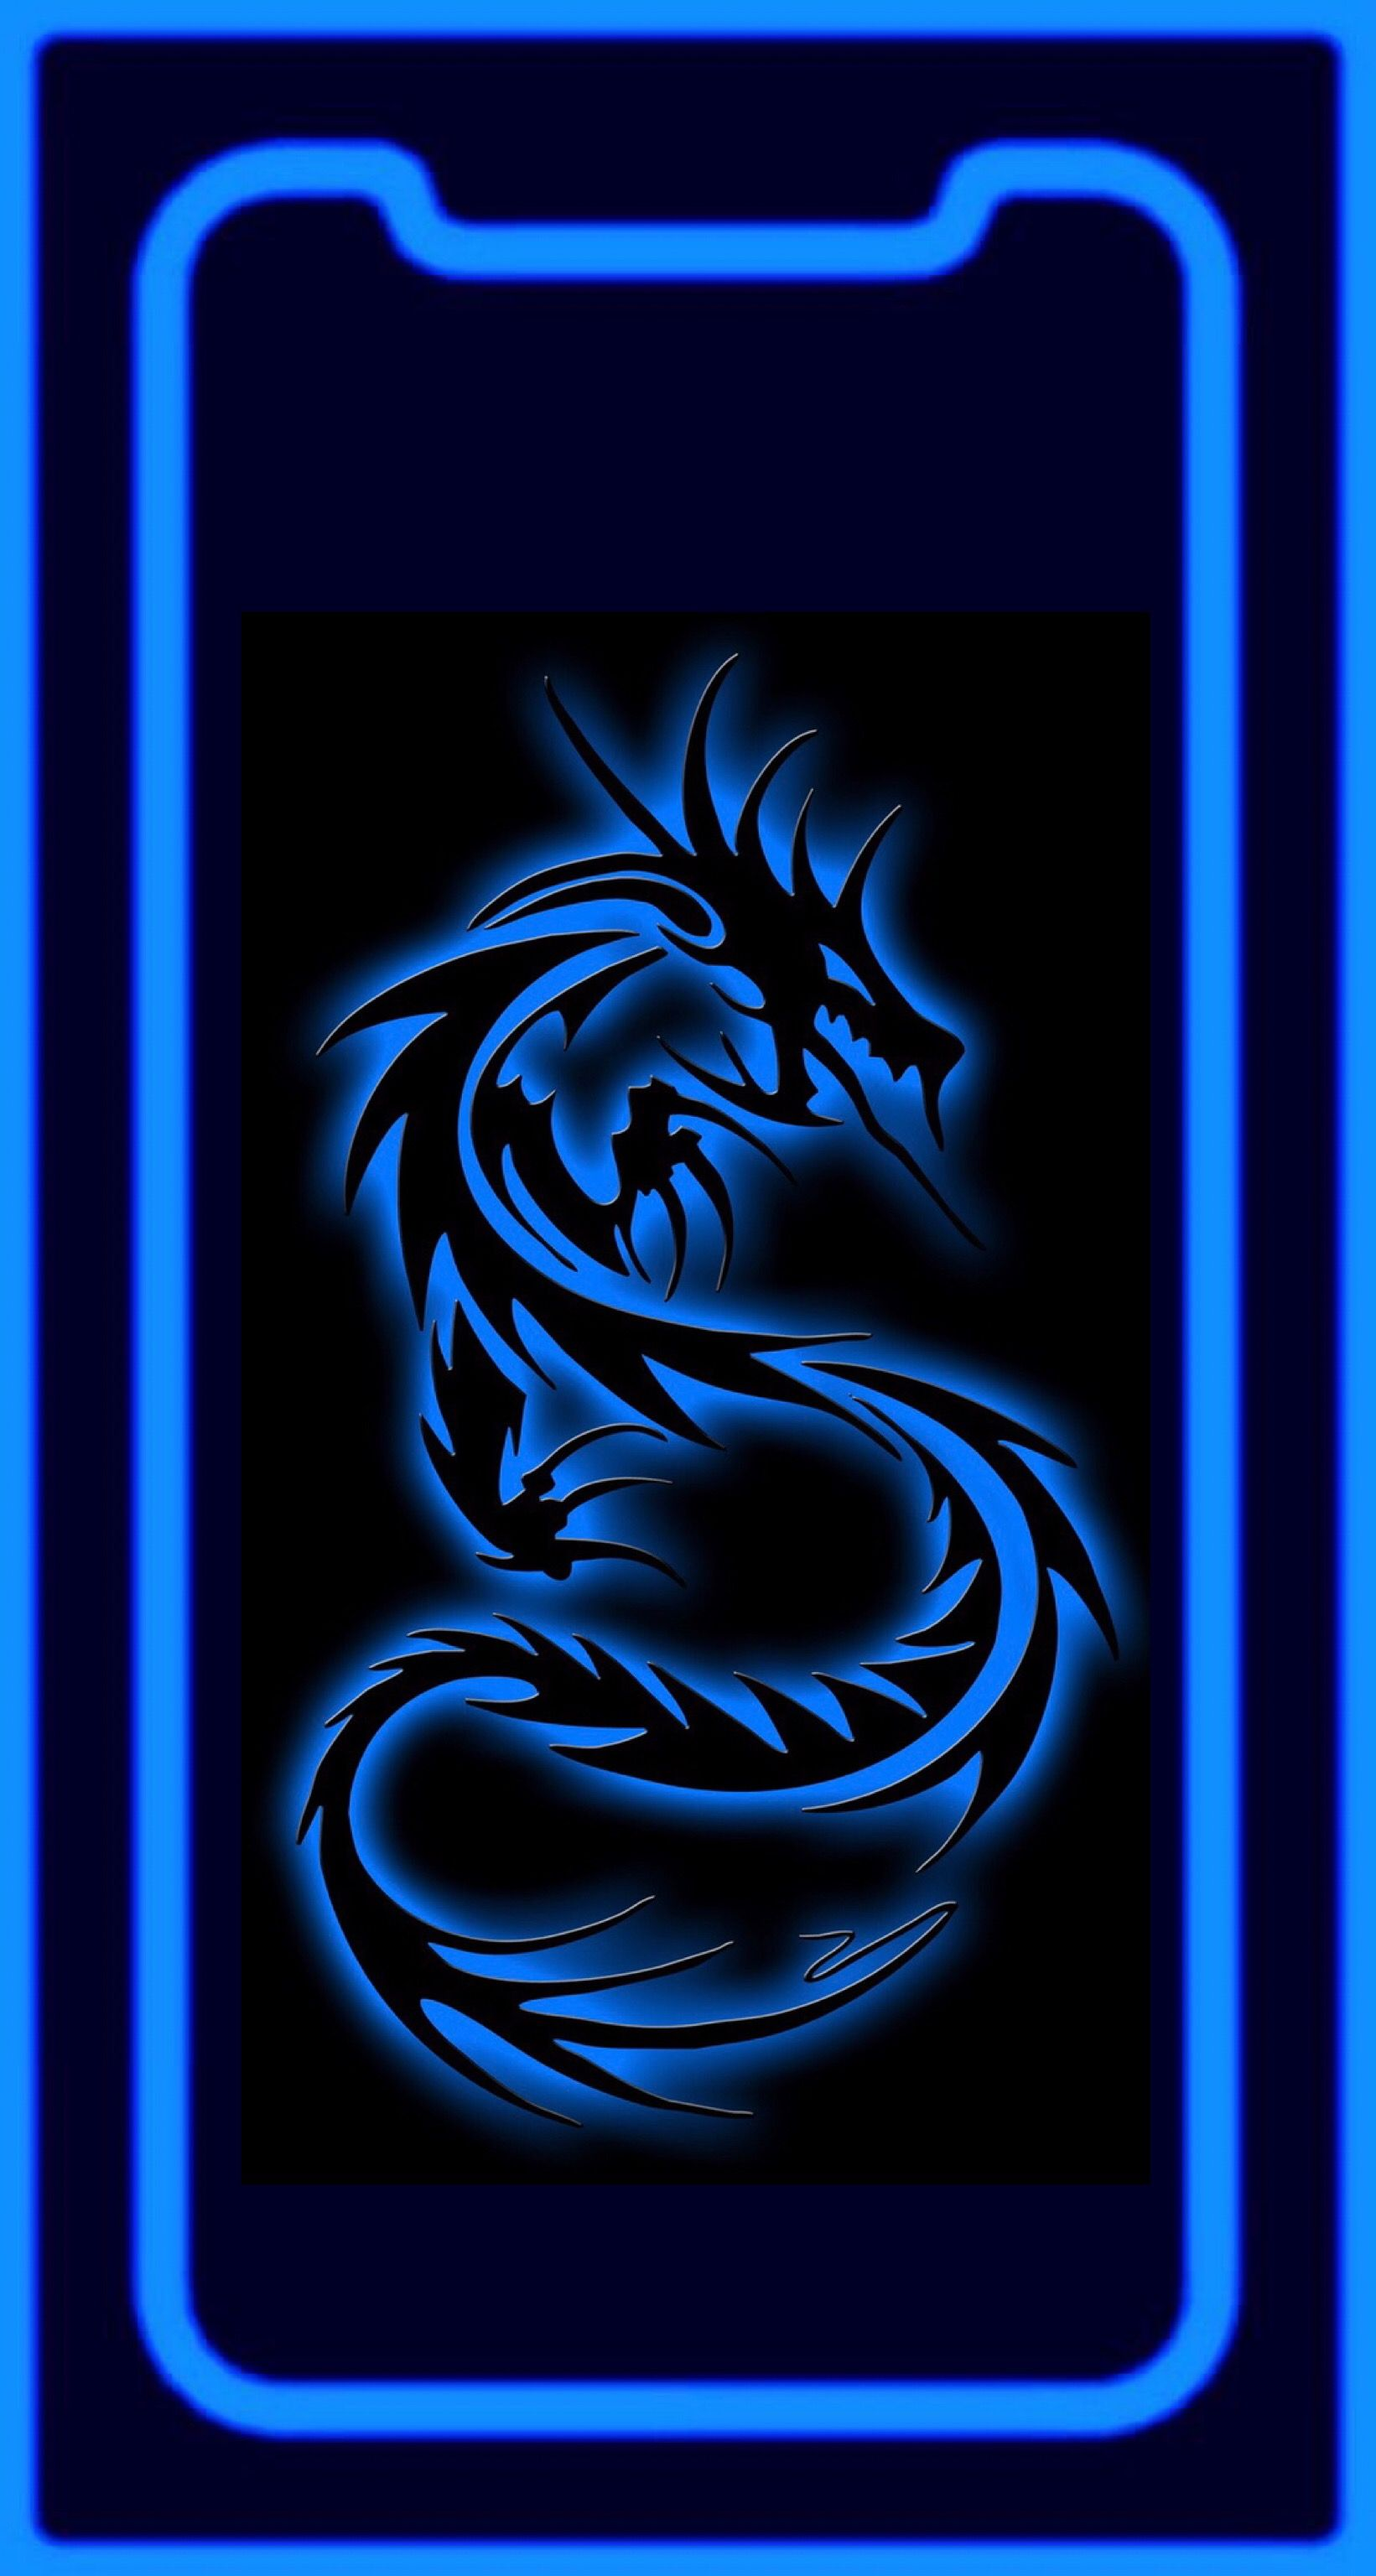 Wallpaper iPhone X Blue Dragon Apple wallpaper iphone